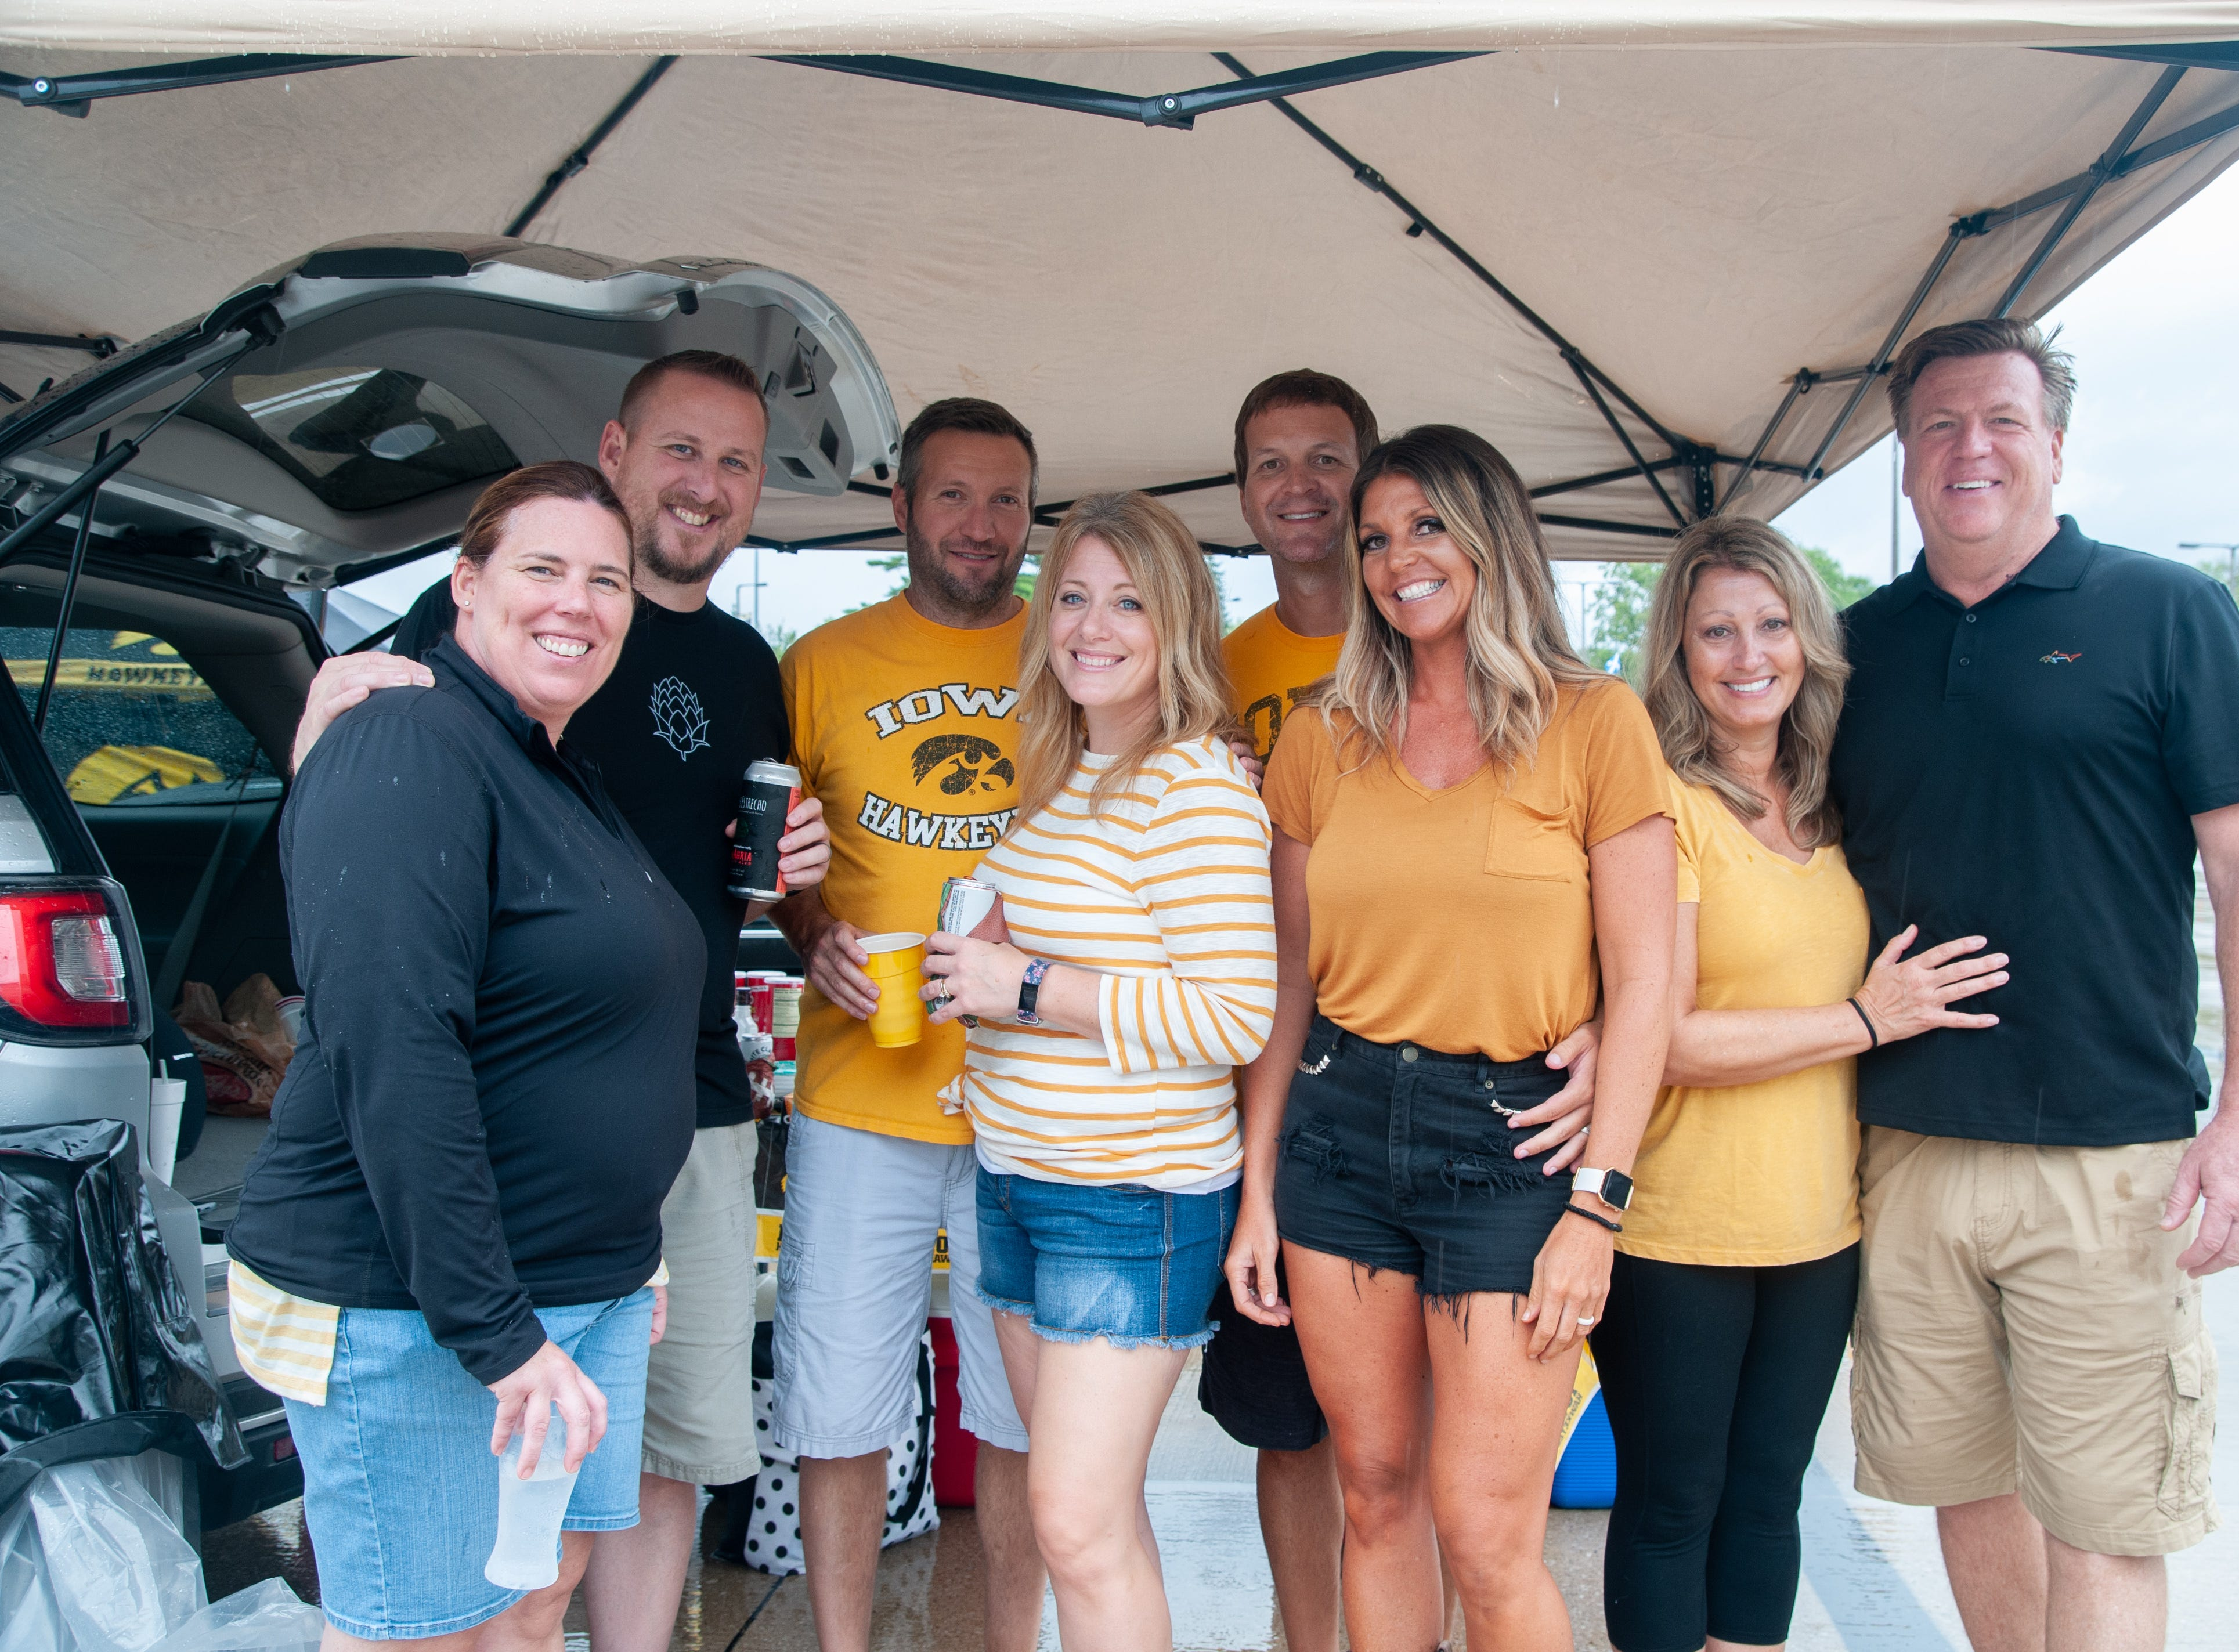 The Allen, Garner, Sampsell and Sullivan families, of St. Louis, Saturday, Sept. 1, 2018, while tailgating before the Iowa game against Northern Illinois in Iowa City.